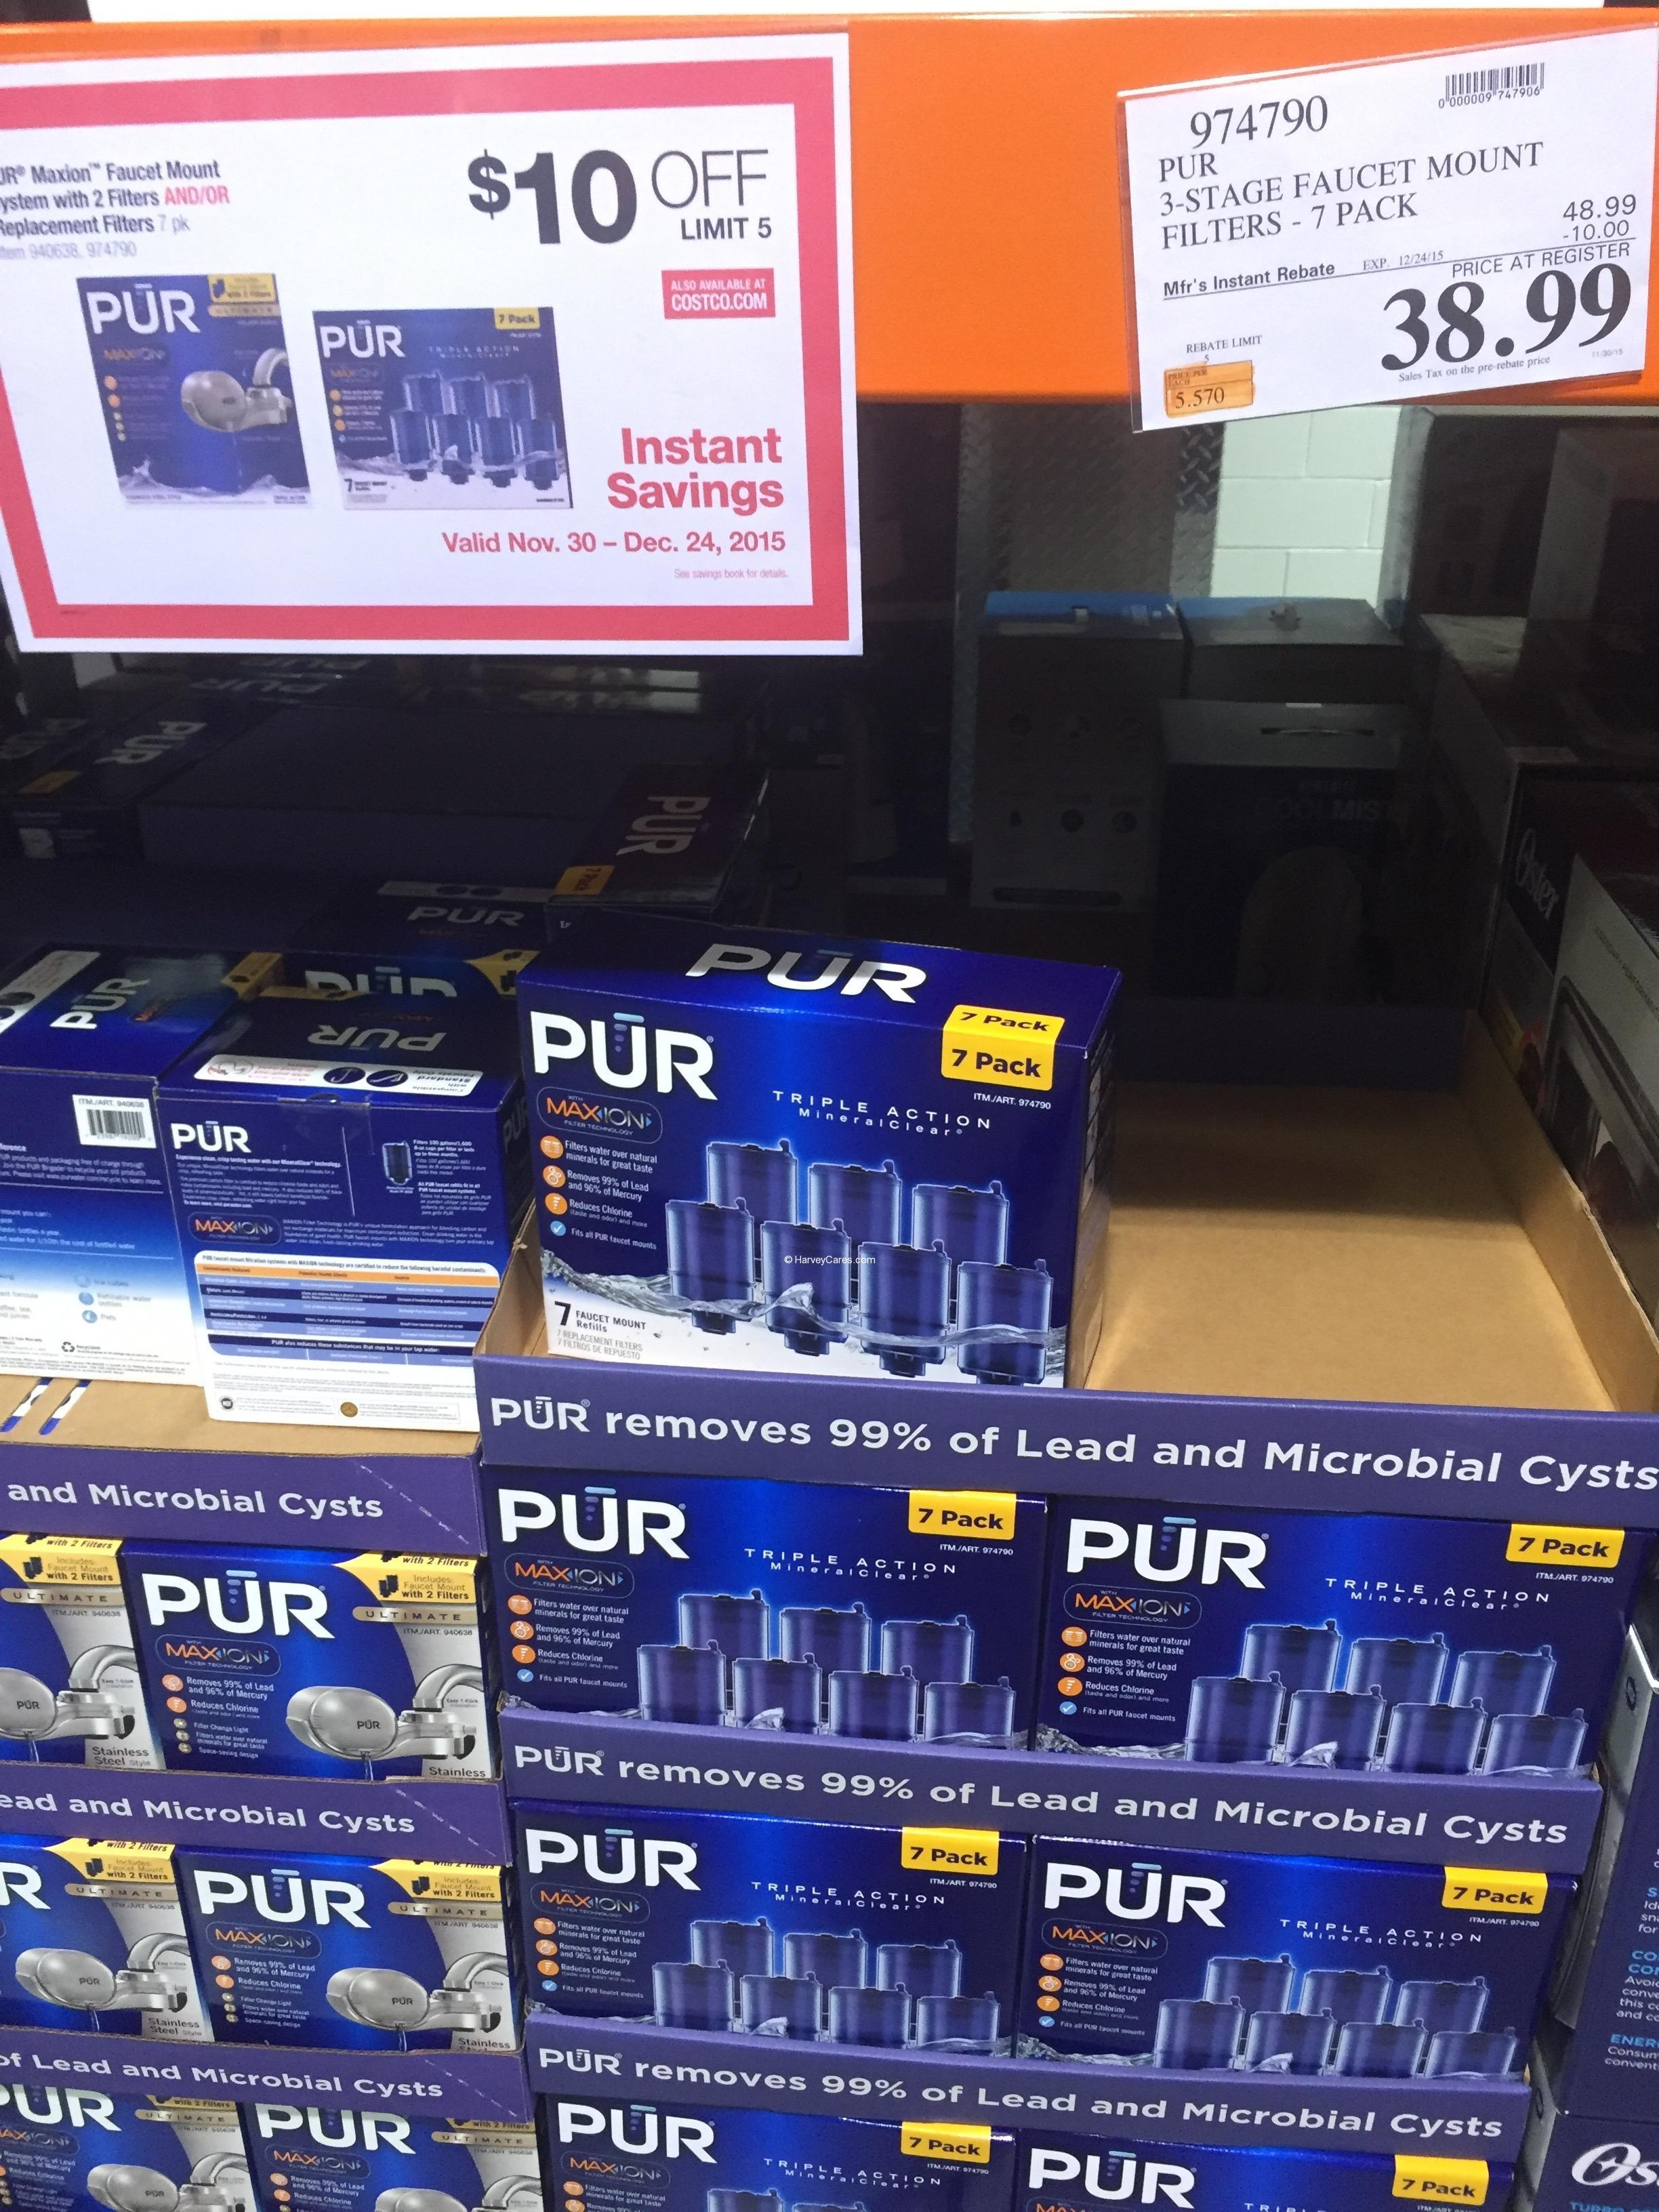 PUR MaxION Water Filter Replacement Costco Price Panel | Harvey @ Costco